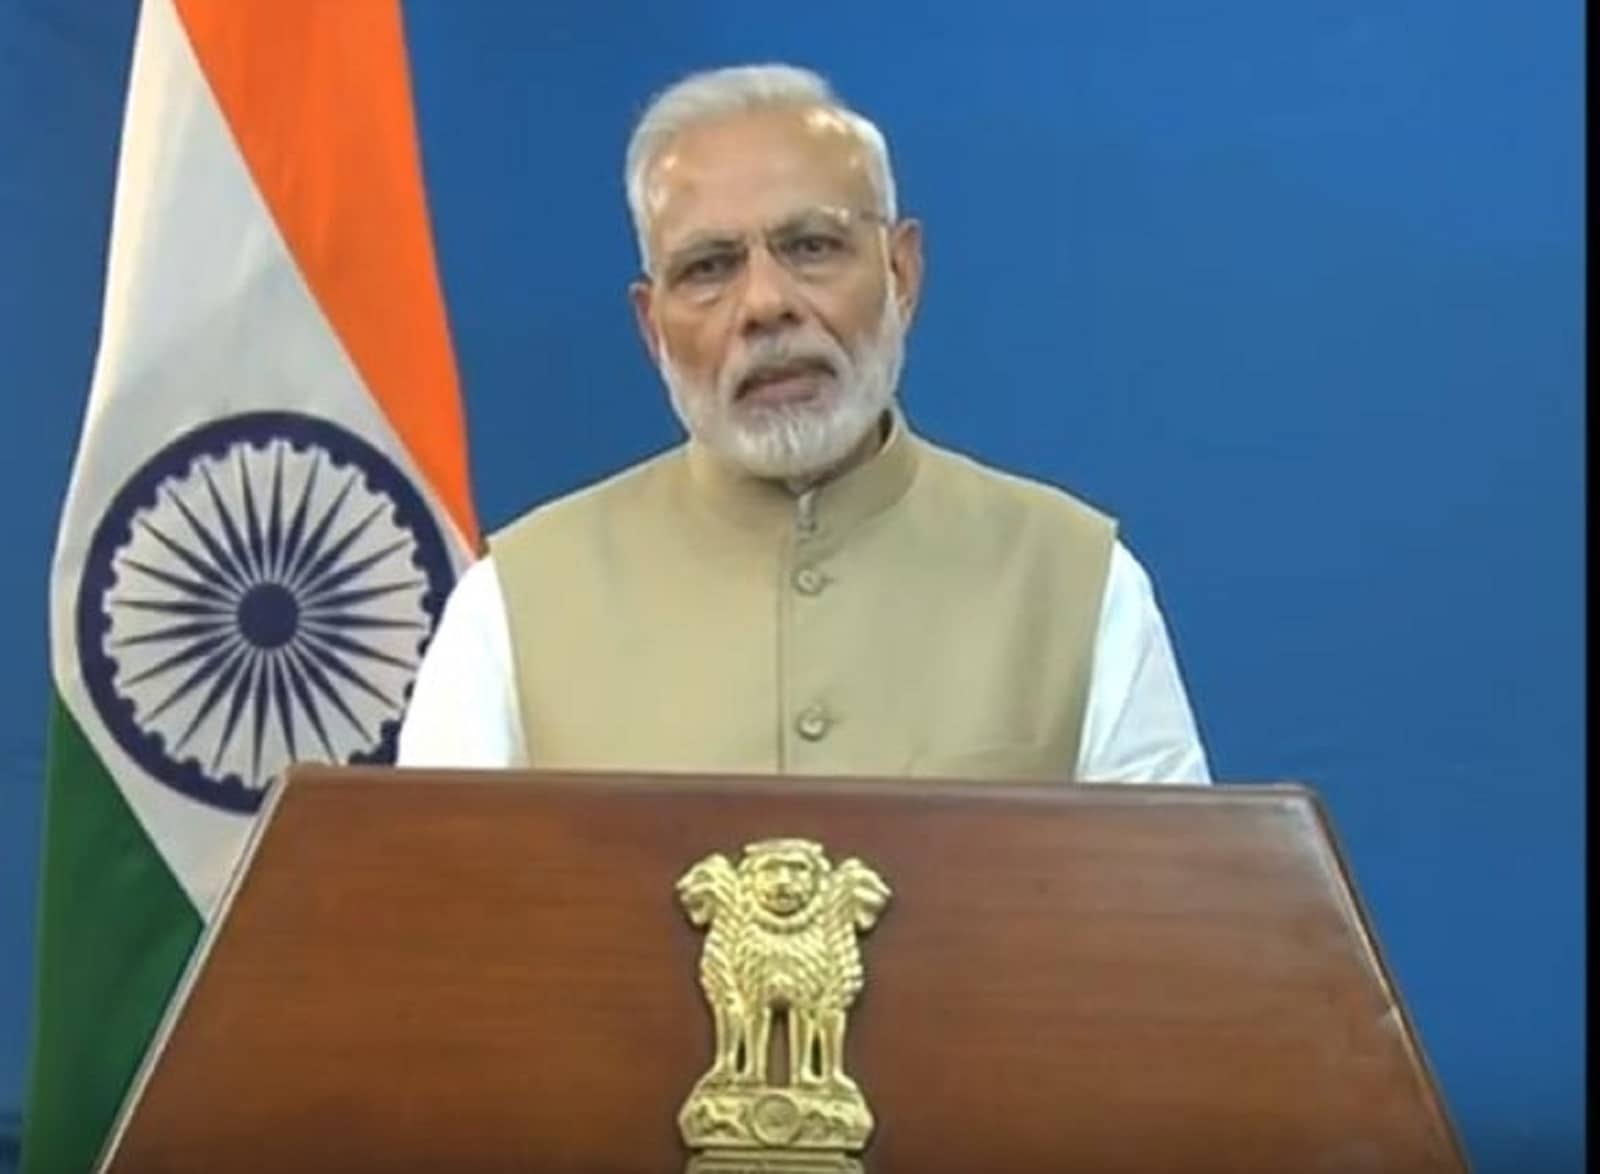 Prime Minister Narendra Modi addressed  the nation on November 8, 2016 to announce demonetisation of Rs 1000 and Rs 500 notes with effect from midnight, making these notes invalid in a major assault on black money, fake currency and corruption. (Photo Credit: PIB Twitter)